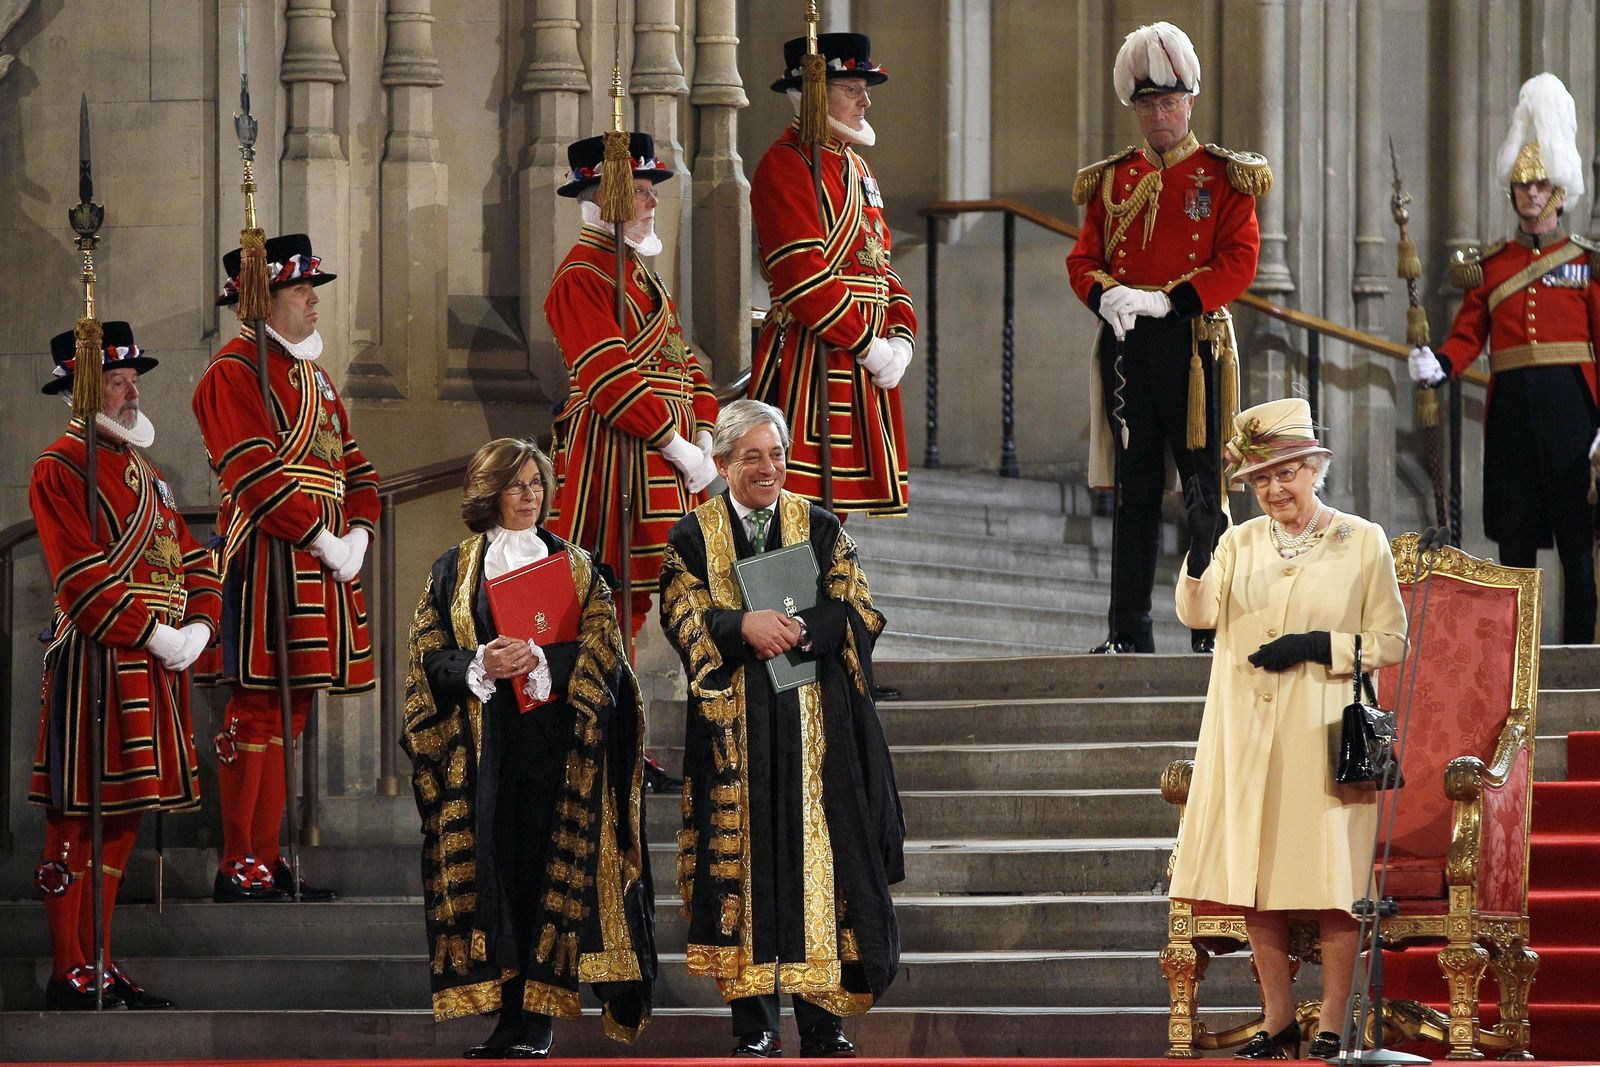 FILE - In this Tuesday, March 20, 2012 file photo, Britain's Queen Elizabeth II, right, waves after she makes an address next to Speaker of The House of lords, Baroness D'Souza, foreground left, and Speaker of The House of Commons John Bercow, foreground centre, at Westminster Hall in London. A colorful era in British parliamentary history is coming to a close with Speaker of the House John Bercow's abrupt announcement Monday, Sept. 9, 2019 that he will leave his influential post by the end of October. (AP Photo/Kirsty Wigglesworth, Pool)